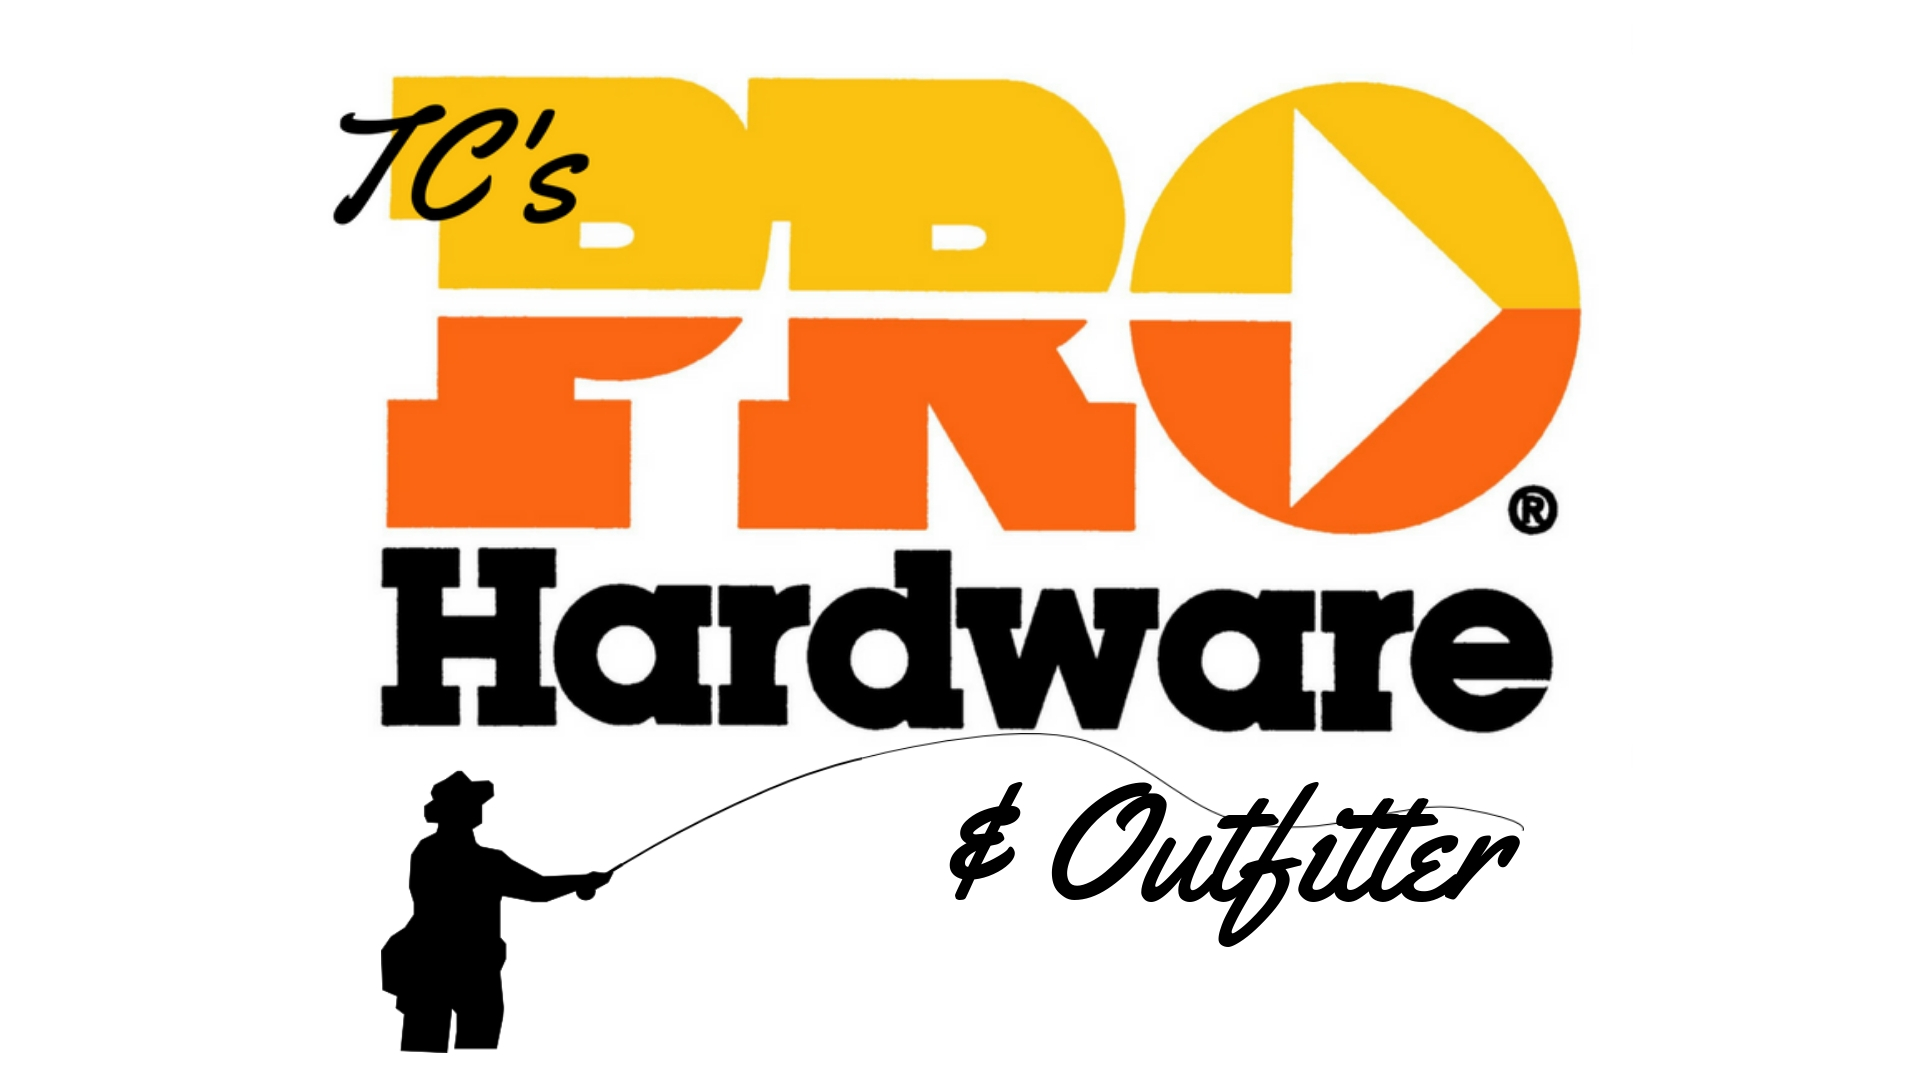 TC's ProHardware and Outfitter